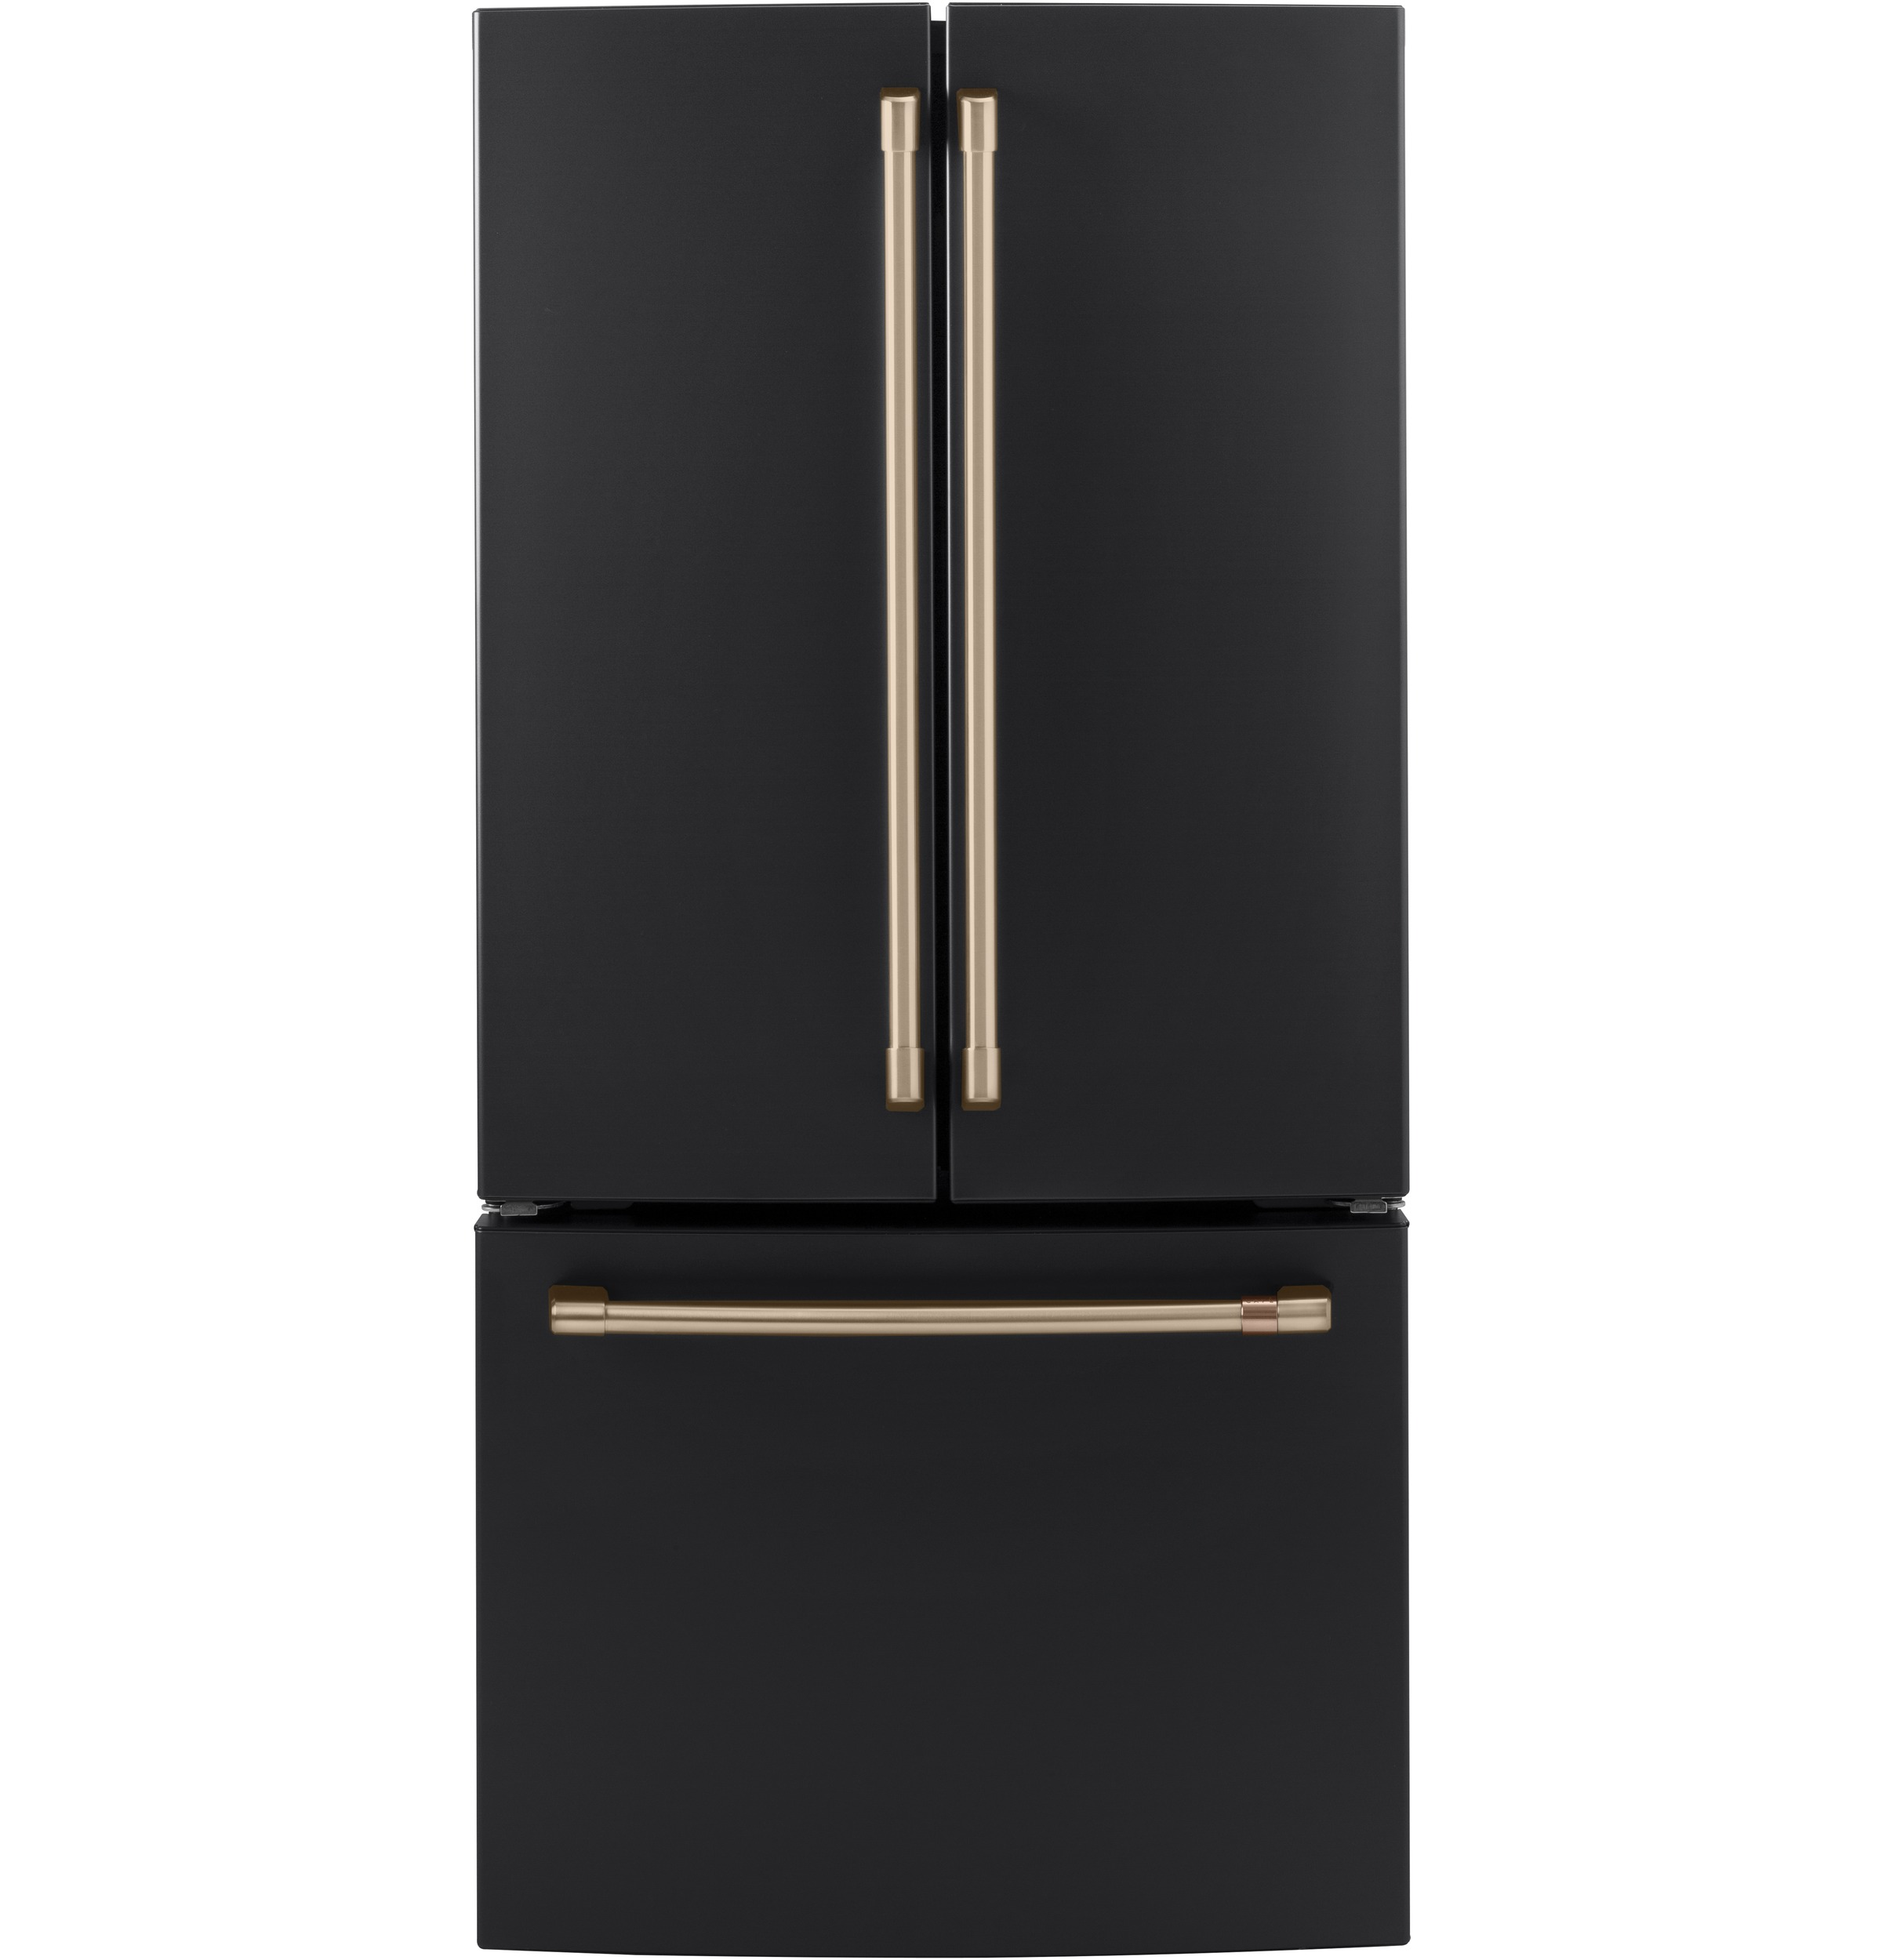 Model: CWE19SP3ND1 | Café™ ENERGY STAR® 18.6 Cu. Ft. Counter-Depth French-Door Refrigerator